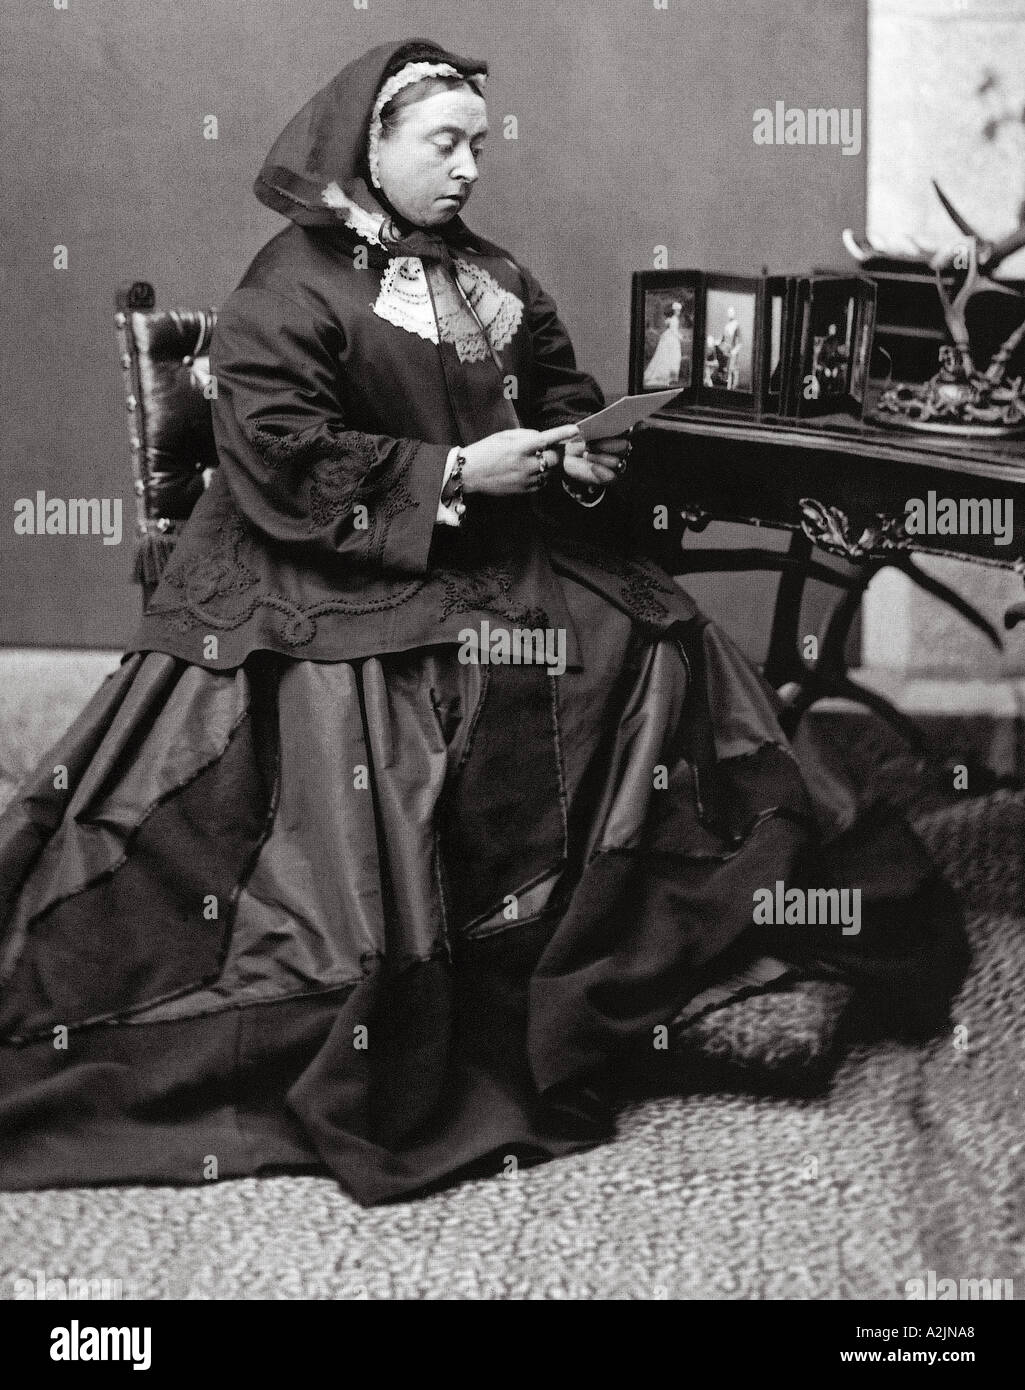 QUEEN VICTORIA in 1867 wearing mourning clothes - Stock Image